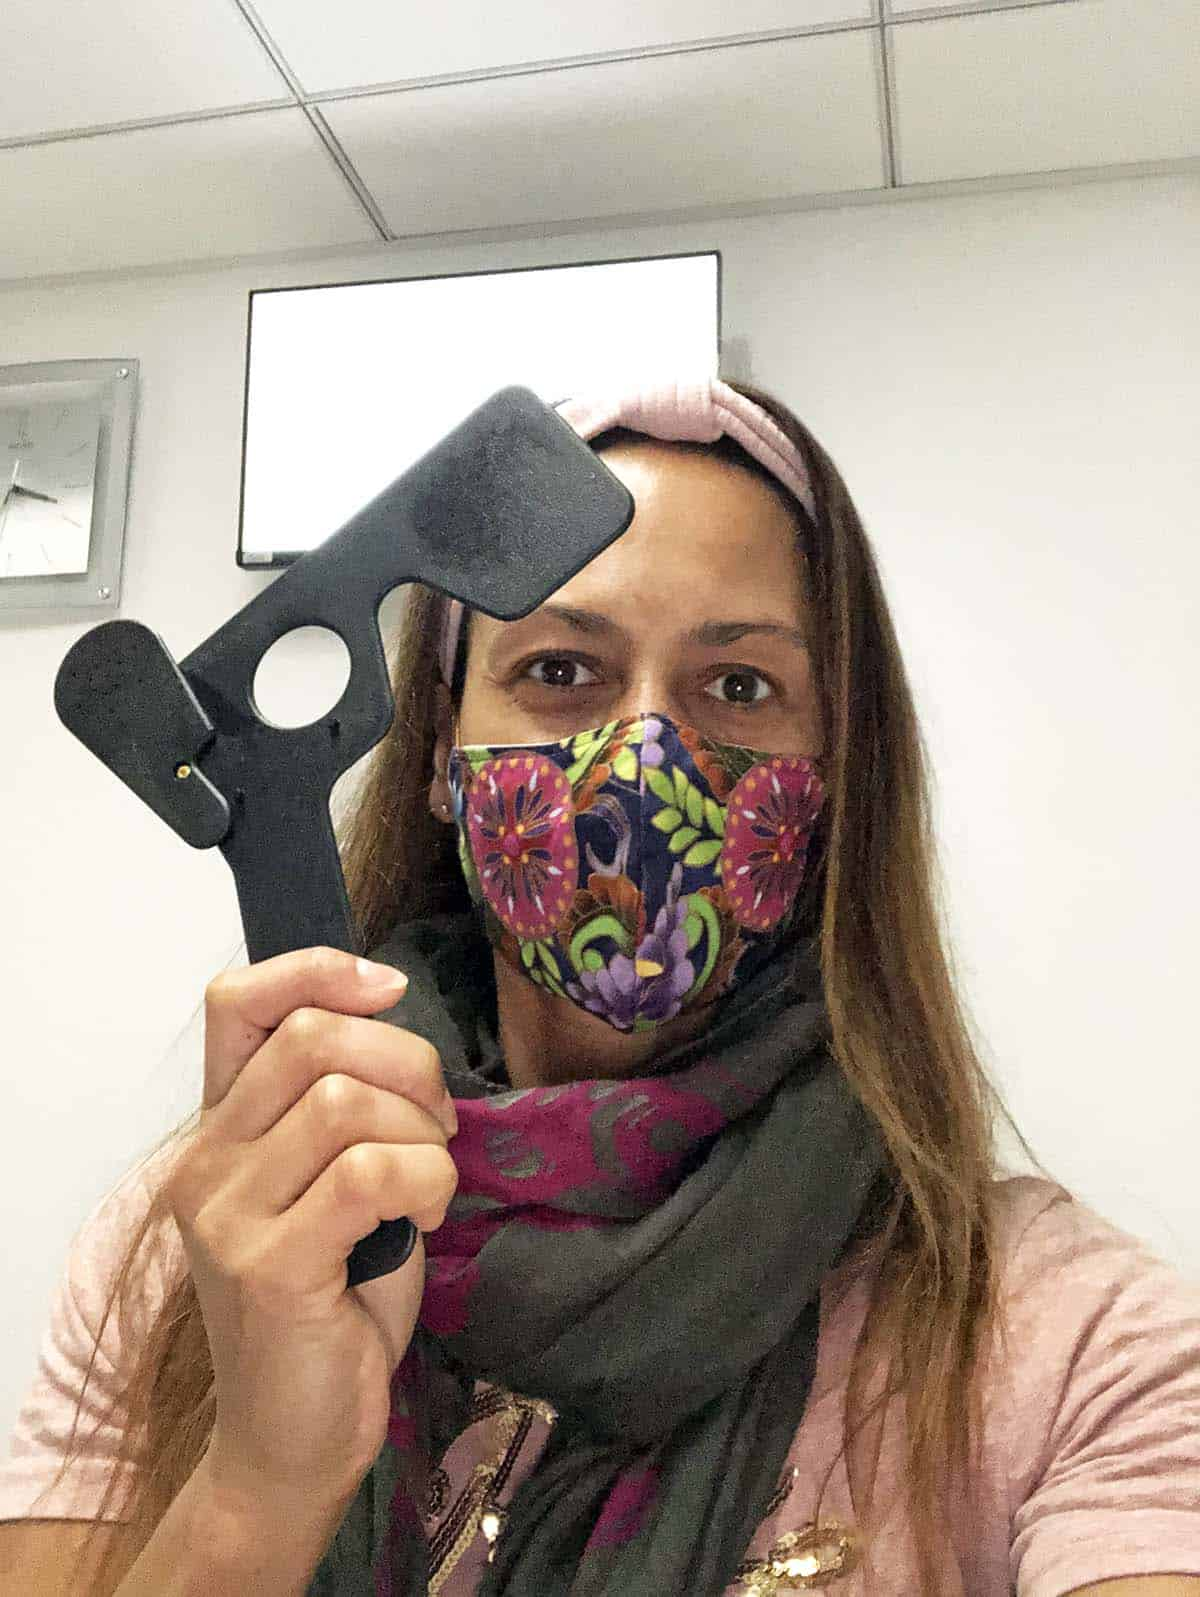 Christel holding a mask for the visual acuity test